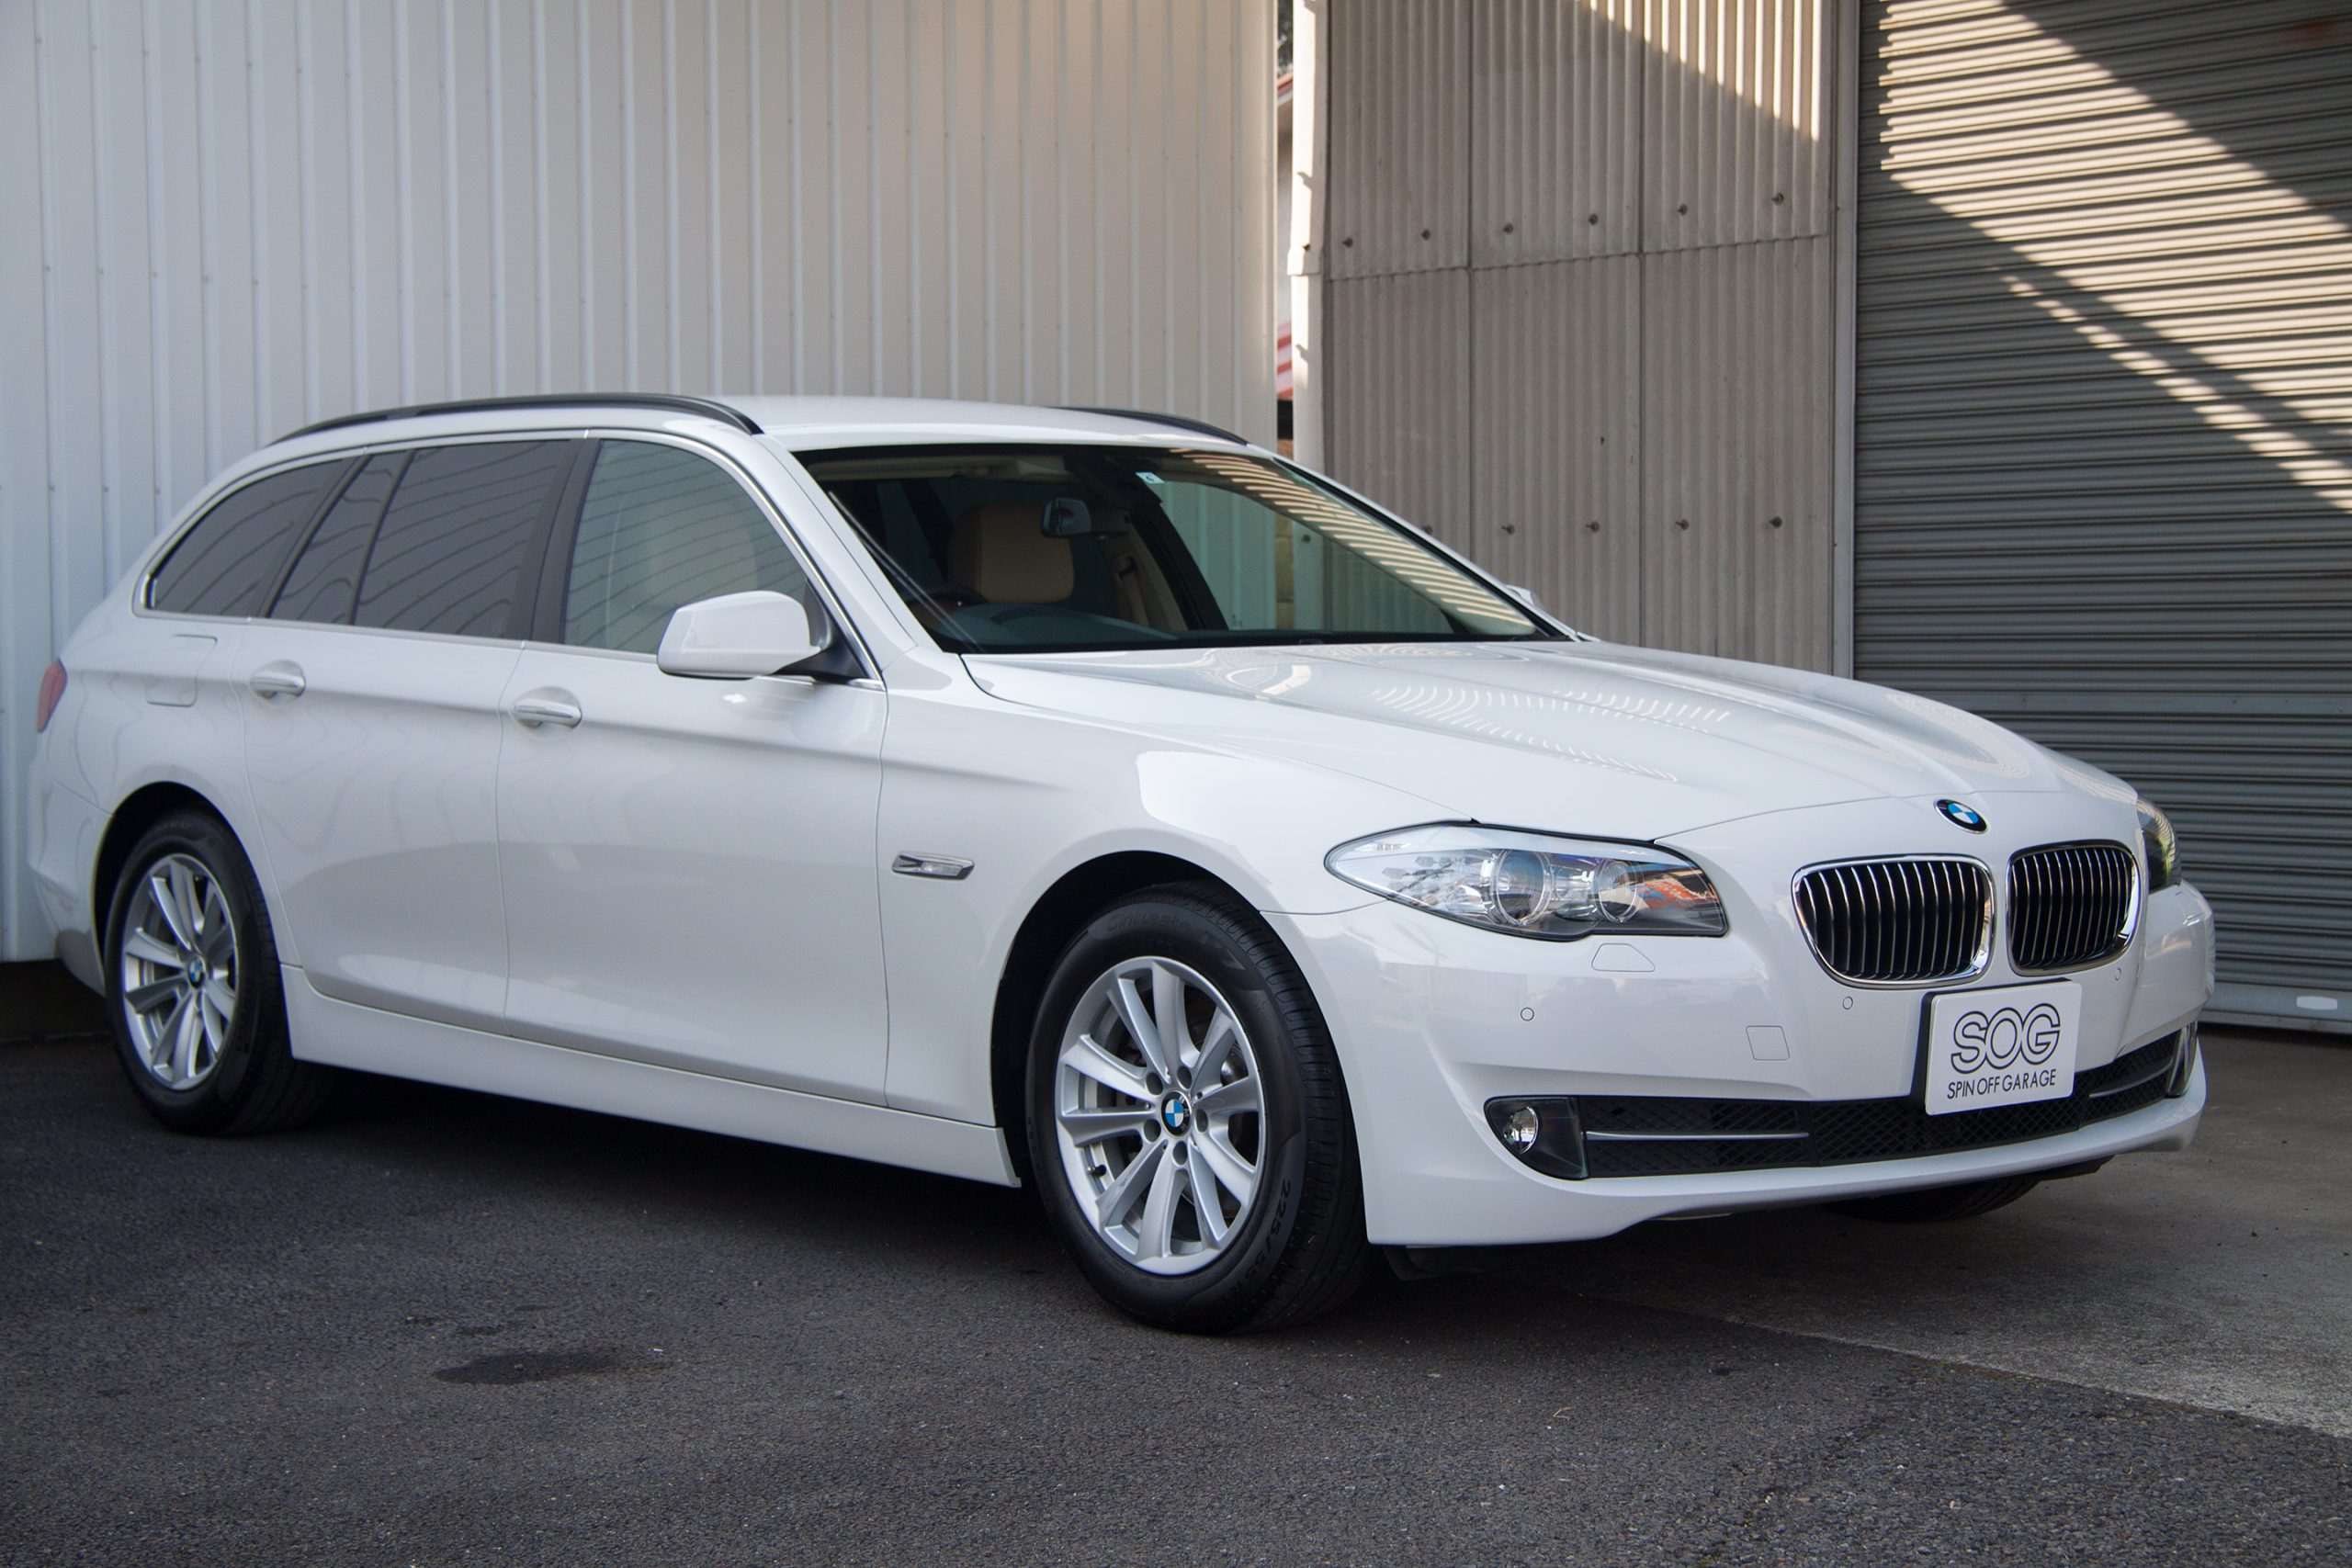 BMW 523i Touring High Line Packageが入庫しました!